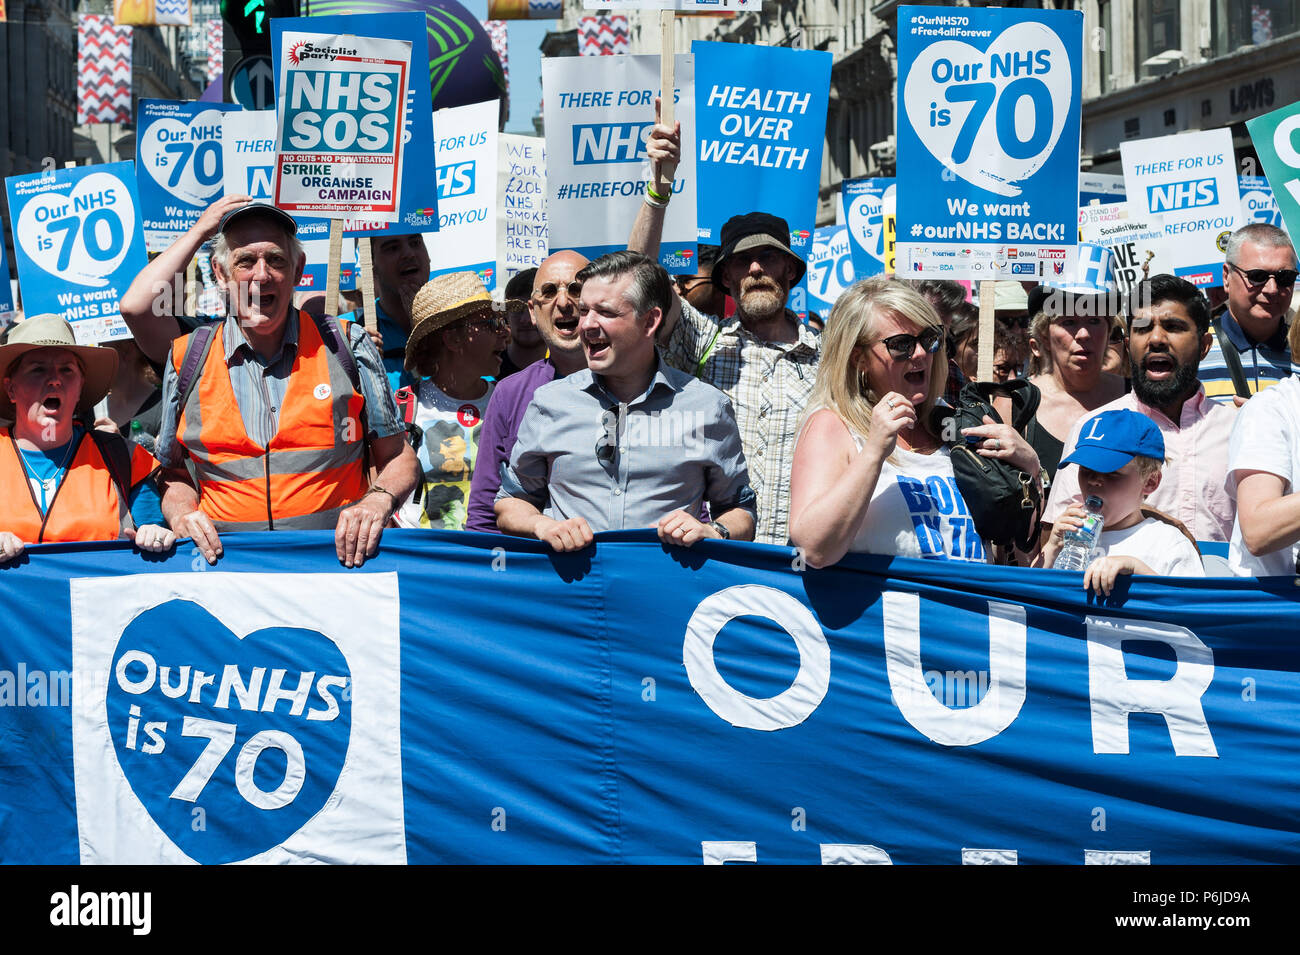 London, UK. 30th June, 2018. Shadow Health Secretary Jonathan Ashworth (C) joined thousands of demonstrators taking part in a march followed by a rally outside Downing Street in central London to celebrate the 70th anniversary of the National Health Service. Protesters call for an end to austerity policies which lead to underfunding and staff shortages in the NHS, and demand that it remains publicly owned and accessible to everyone. Credit: Wiktor Szymanowicz/Alamy Live News - Stock Image